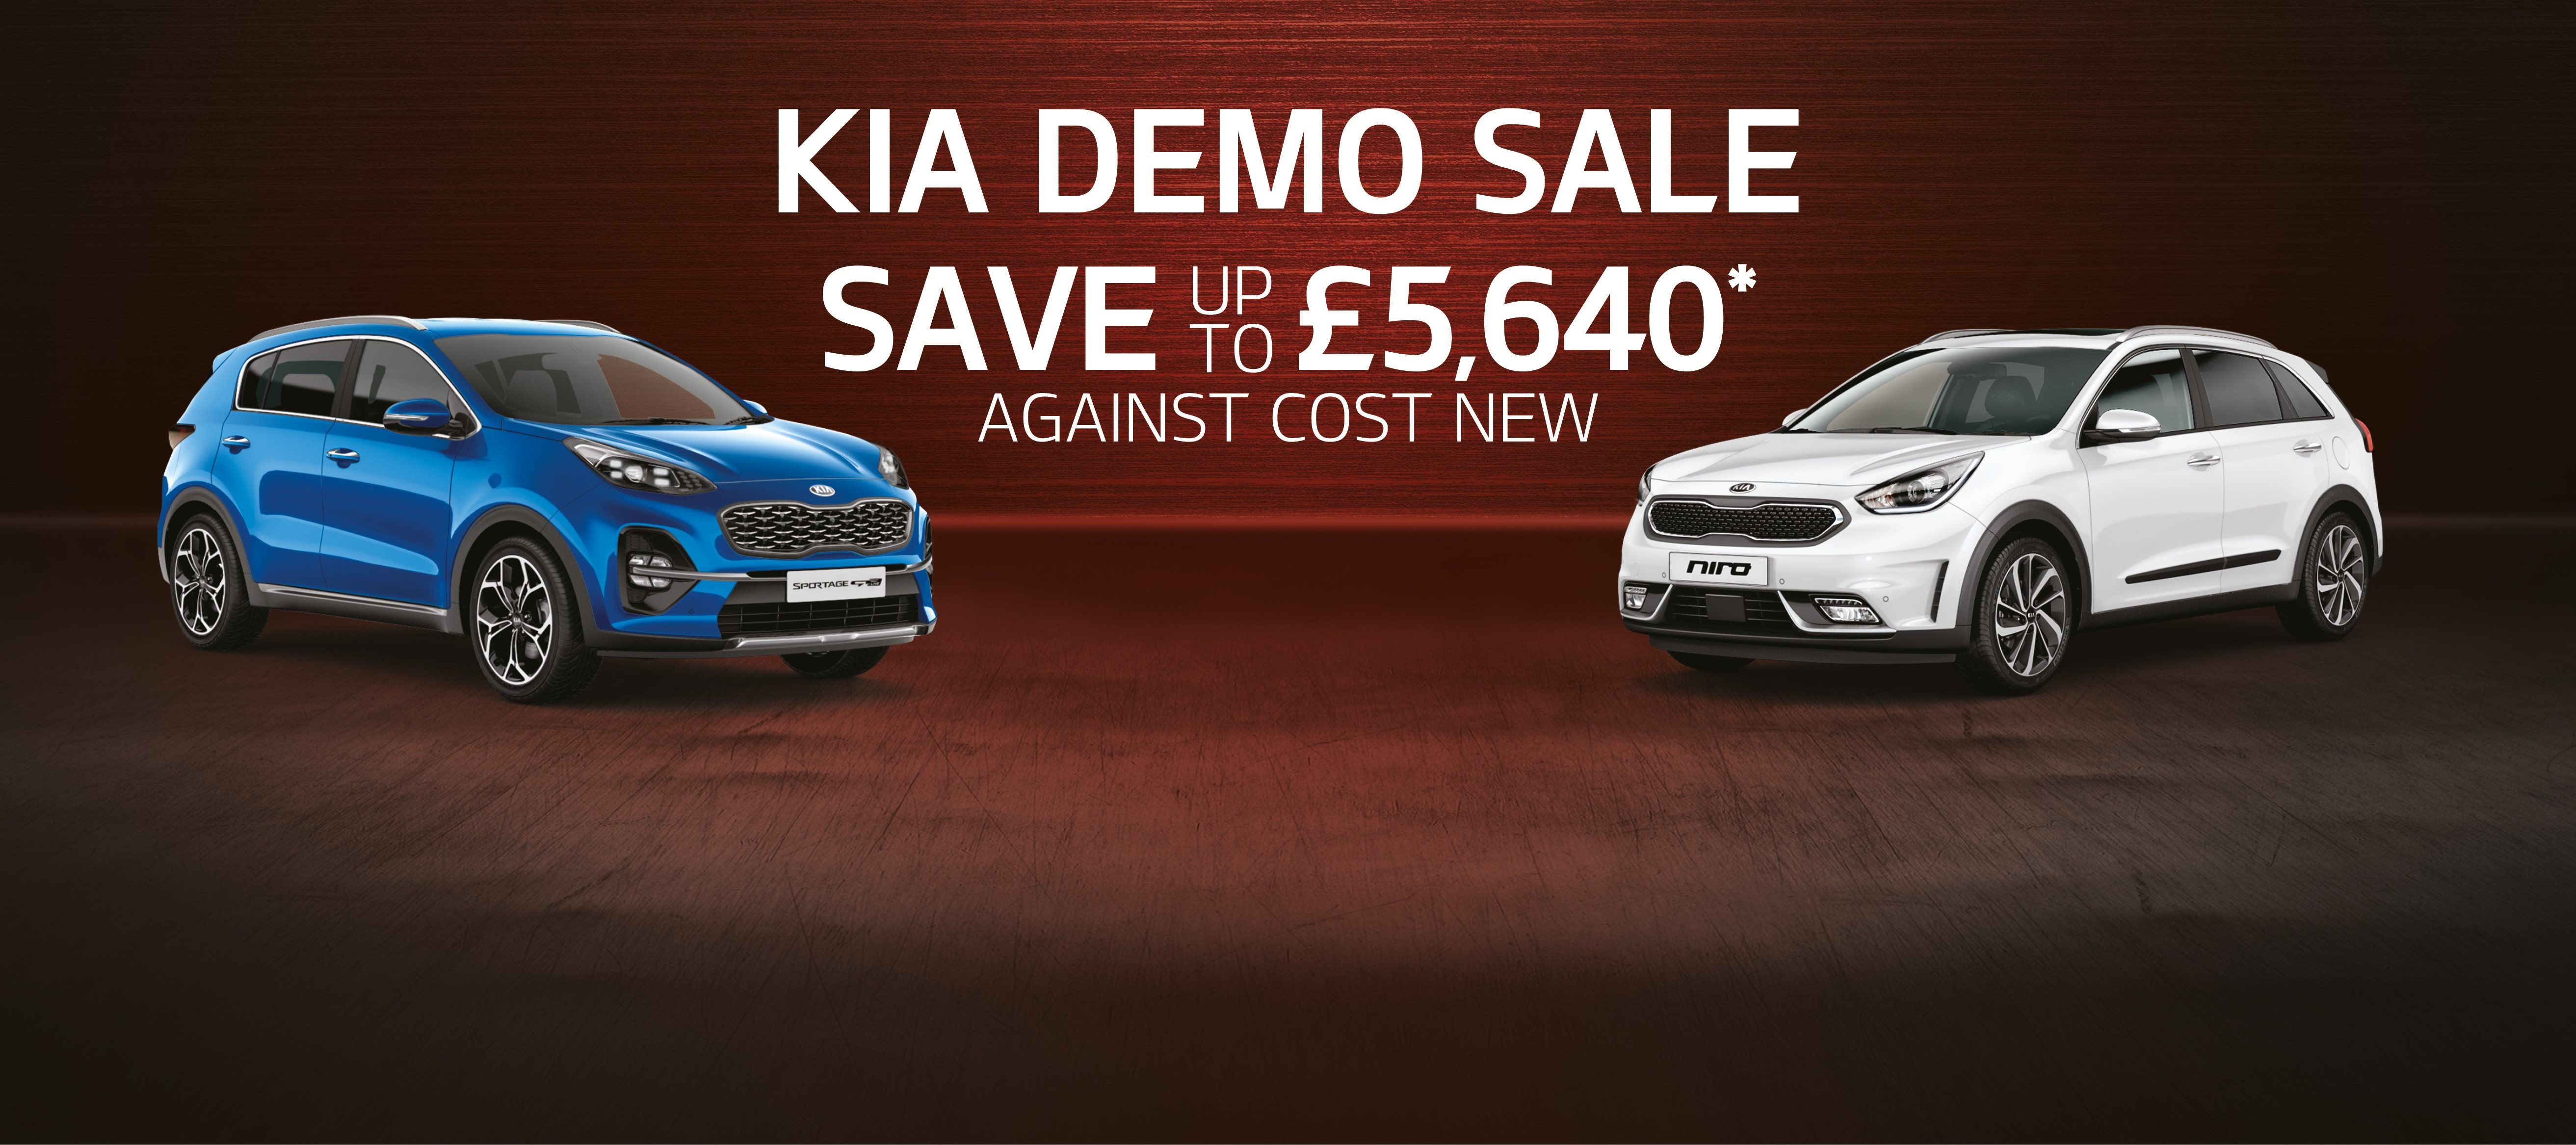 KIA DEMO MODELS WITH HUGE SAVINGS AGAINST COST NEW